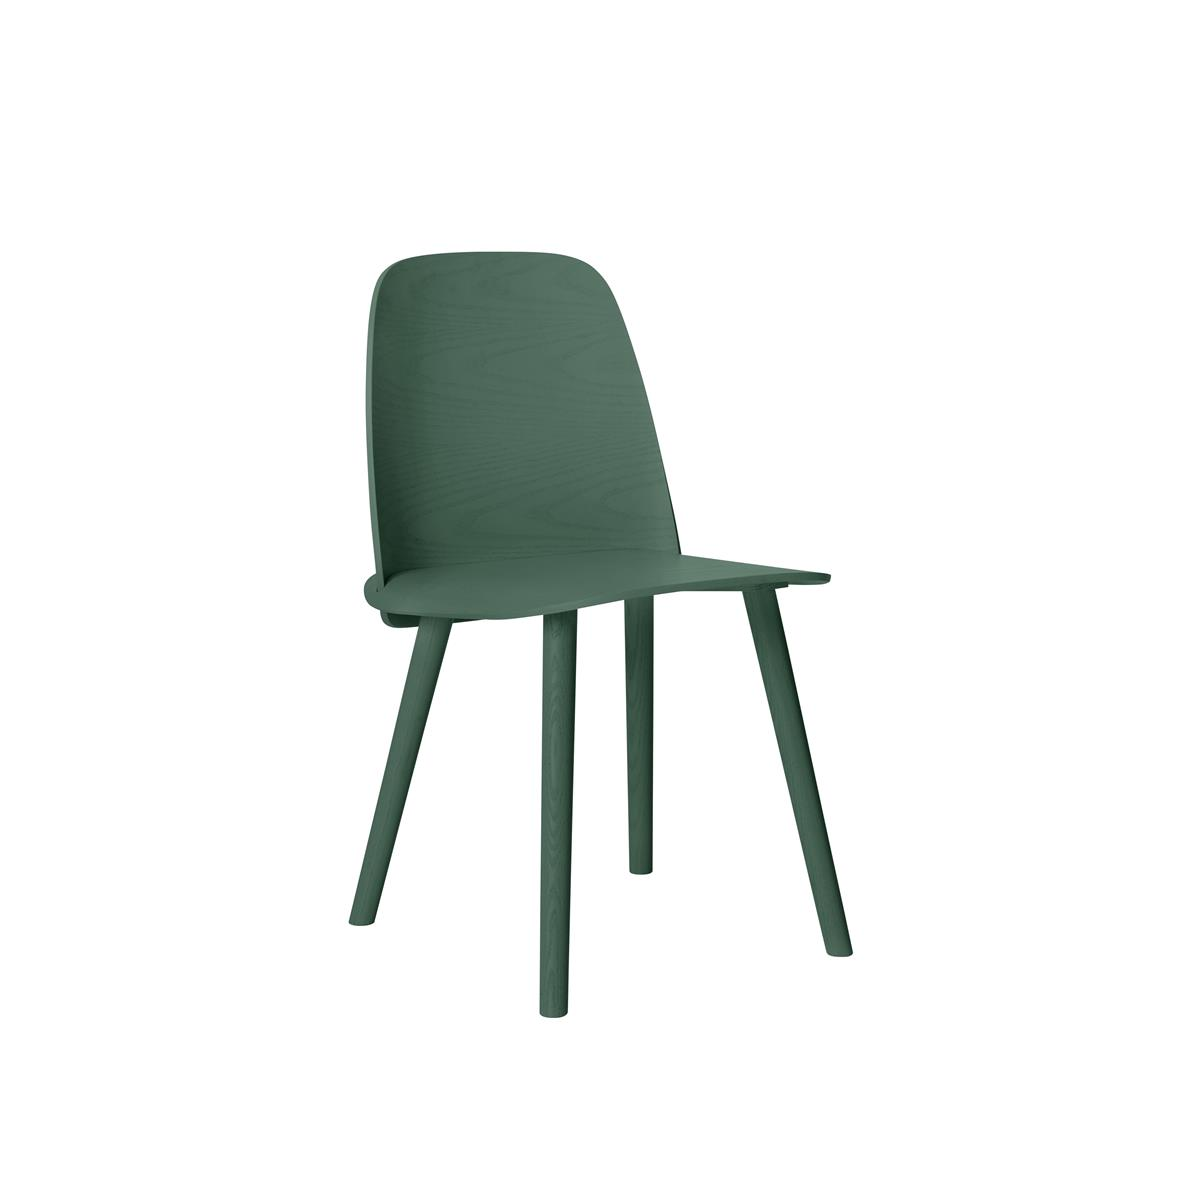 Nerd Chair - Green